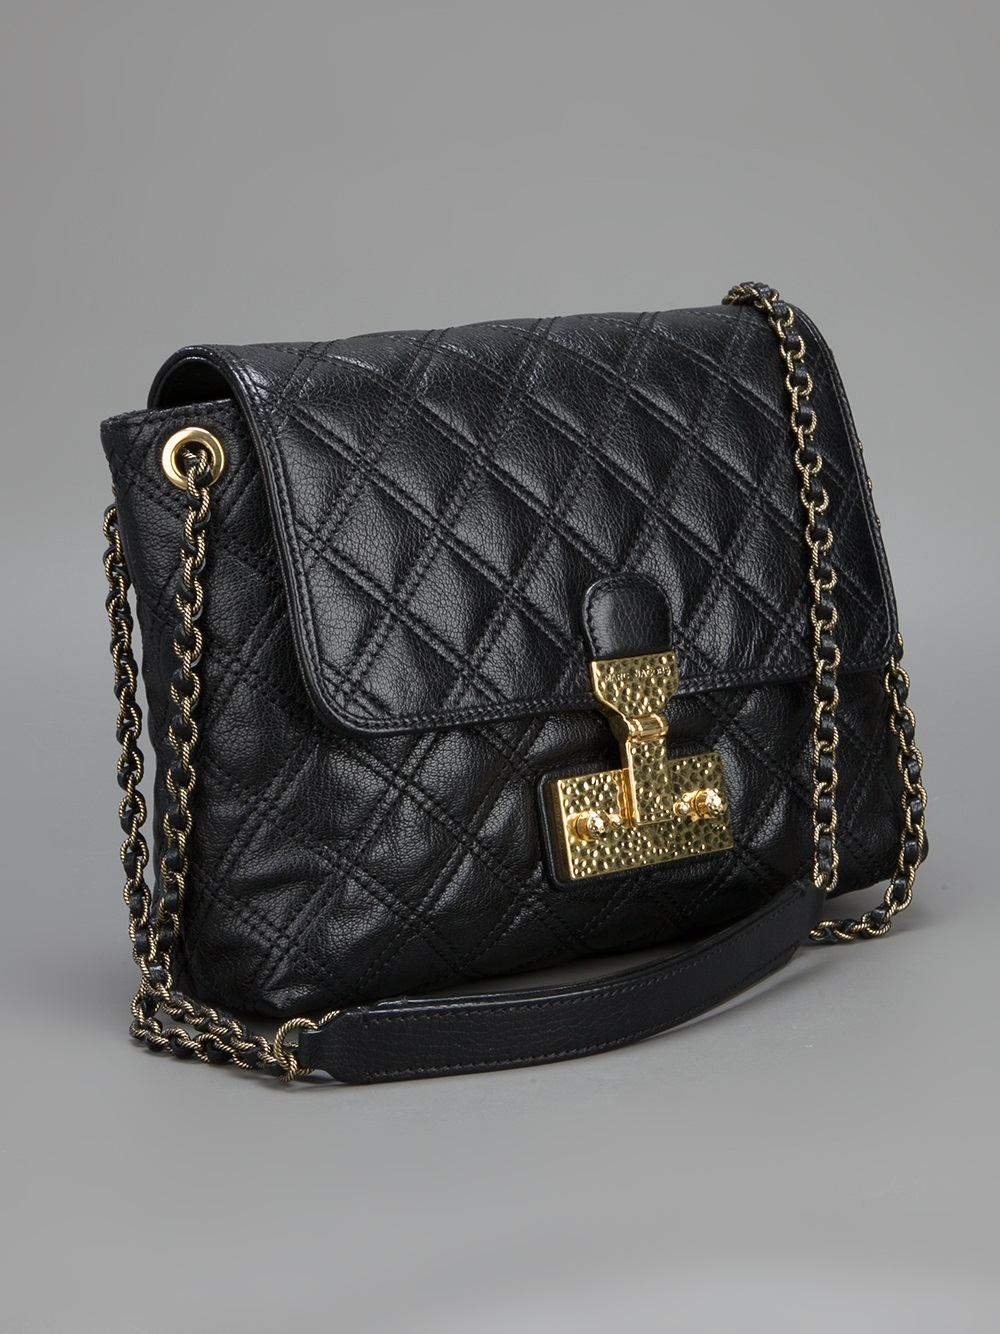 36f4cc1cc9a9 Lyst - Marc Jacobs Quilted Shoulder Bag in Black